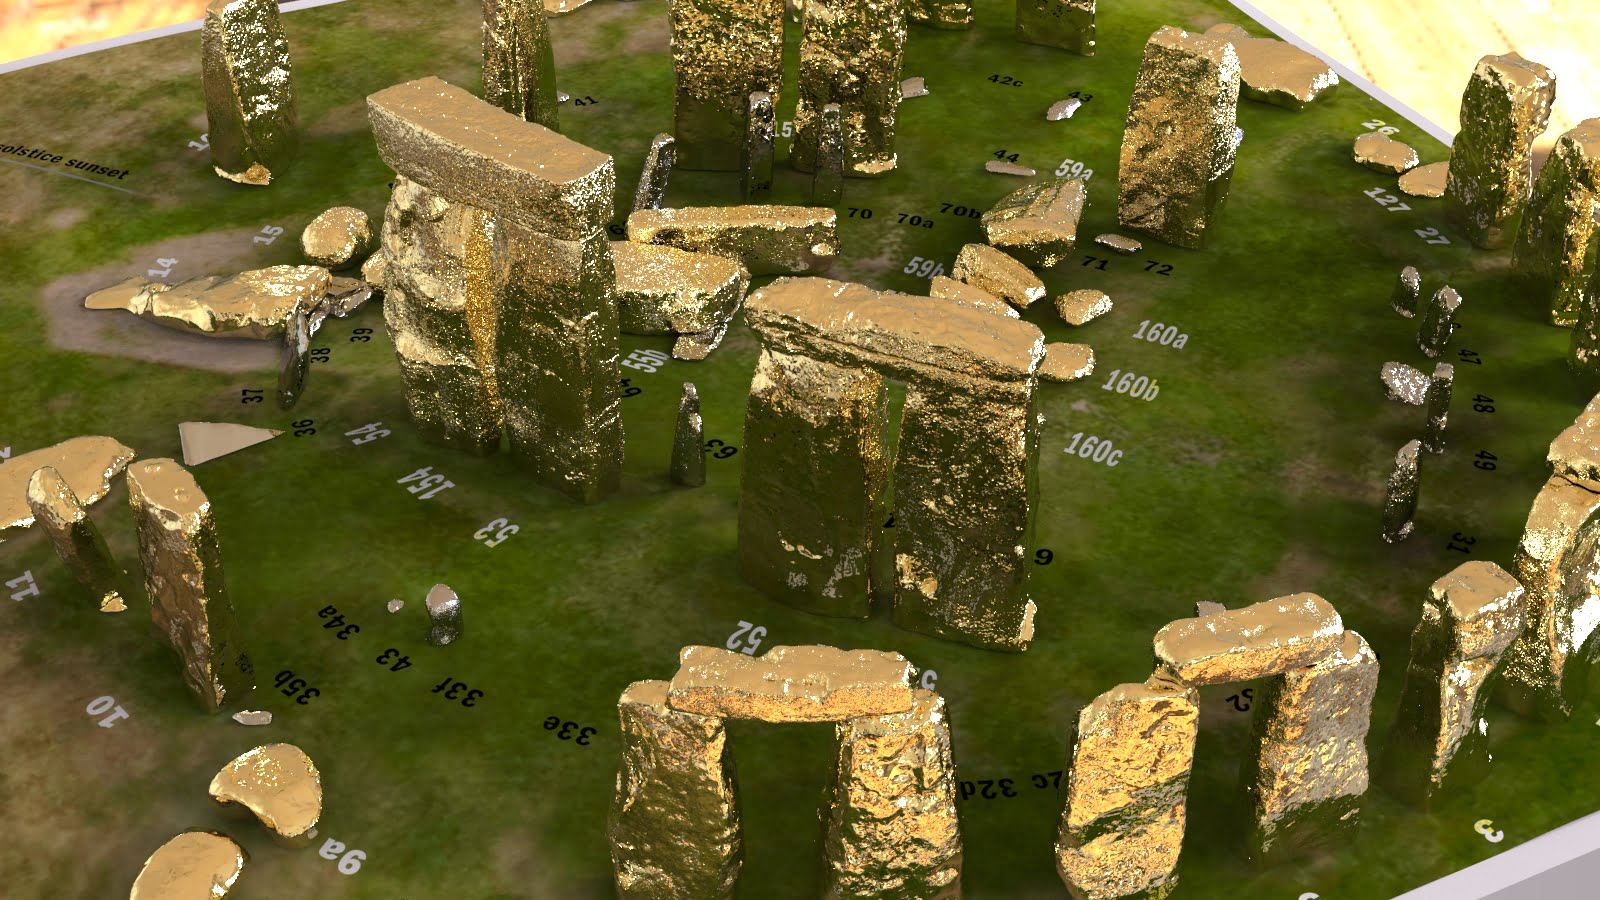 Buy Stonehenge Models: Gold sarsens and silver bluestones accurate and detailed Stonehenge model replica 003  - 200th scale pick n mix -